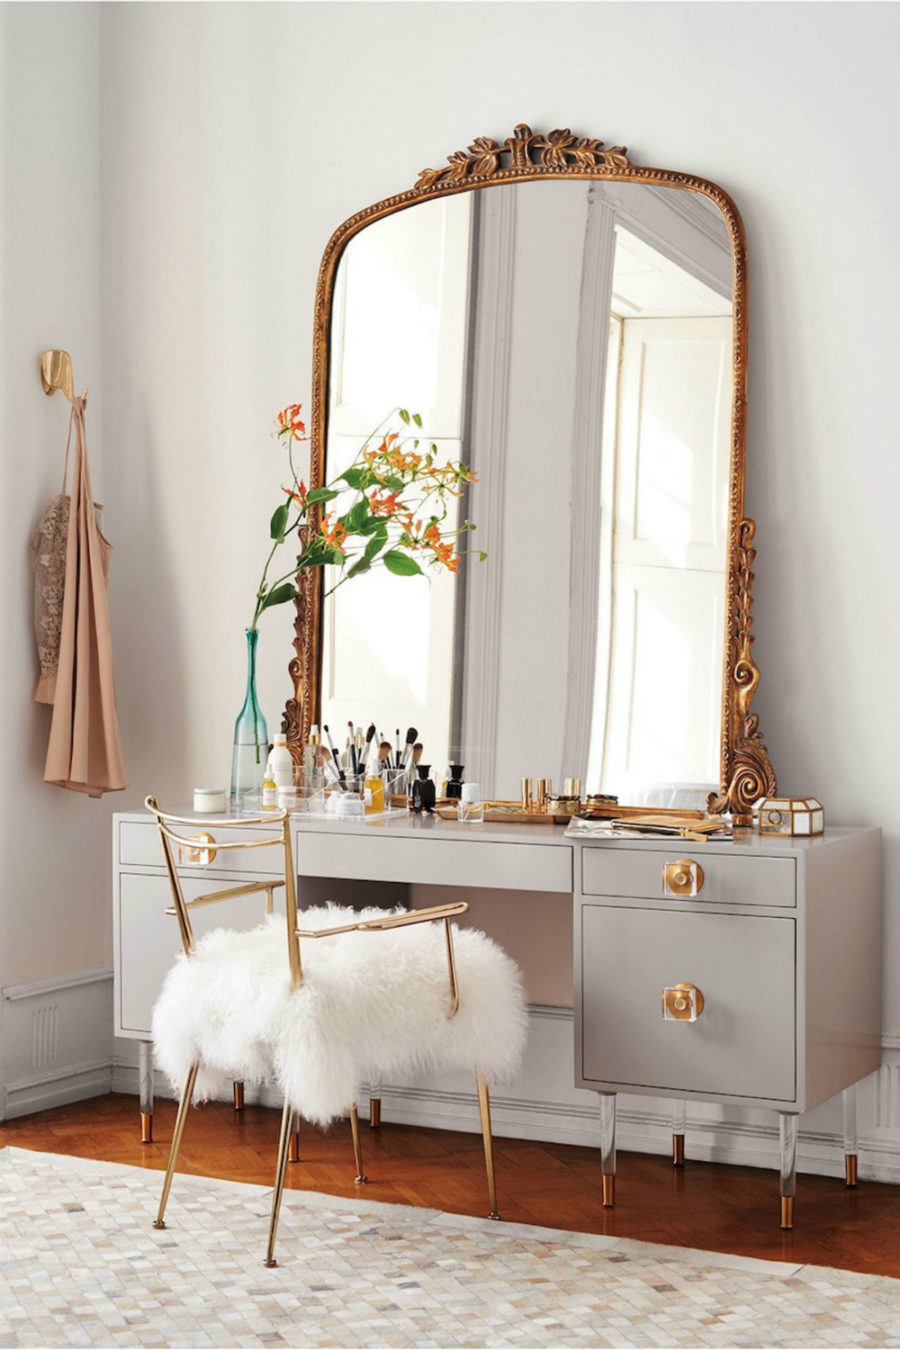 Eye Candy: When a Mirror Can Make All the Difference